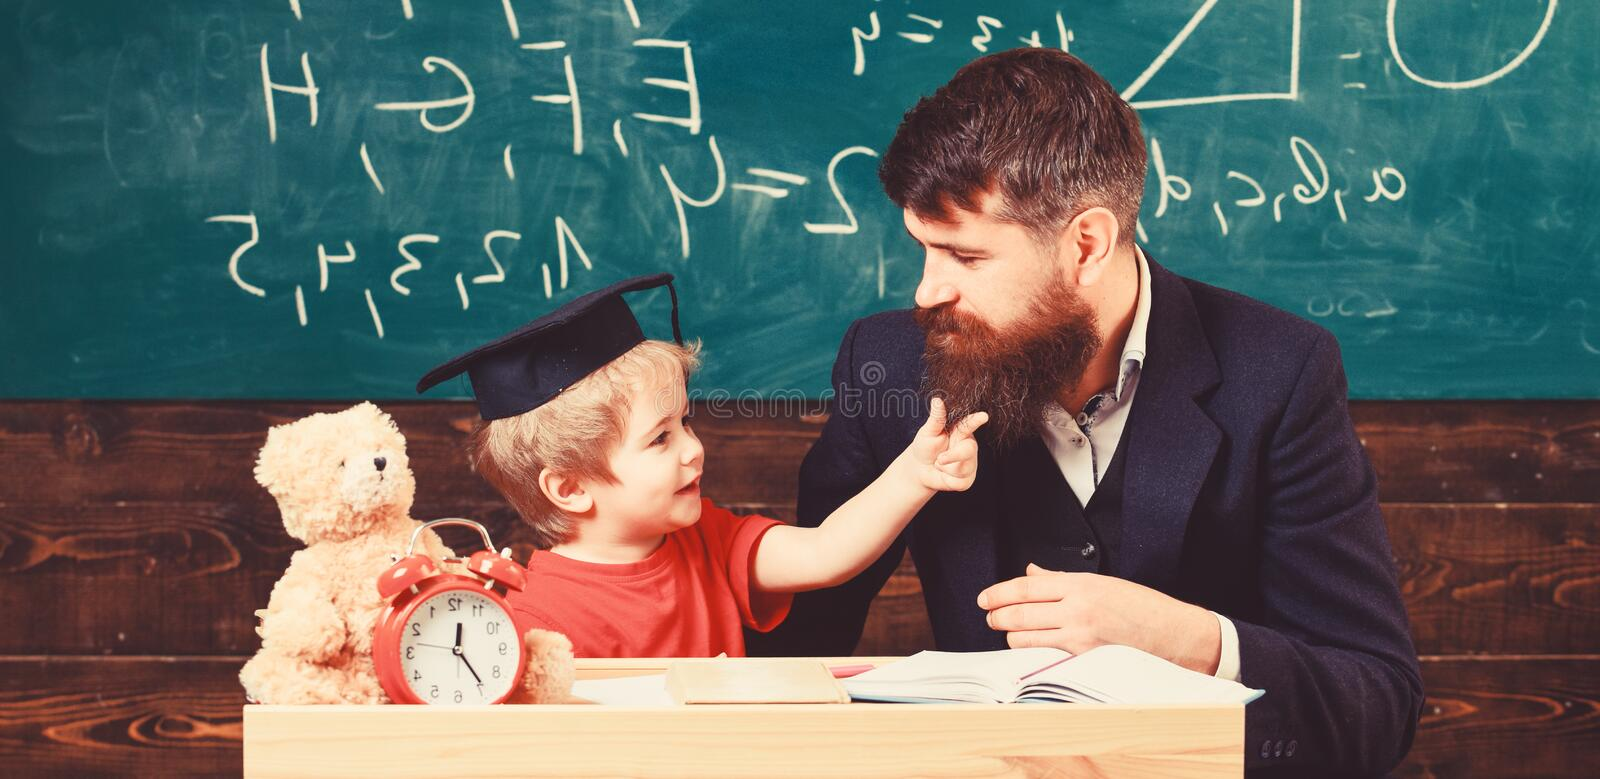 Naughty child concept. Father with beard, teacher teaches son, little boy. Kid cheerful distracting while studying royalty free stock image